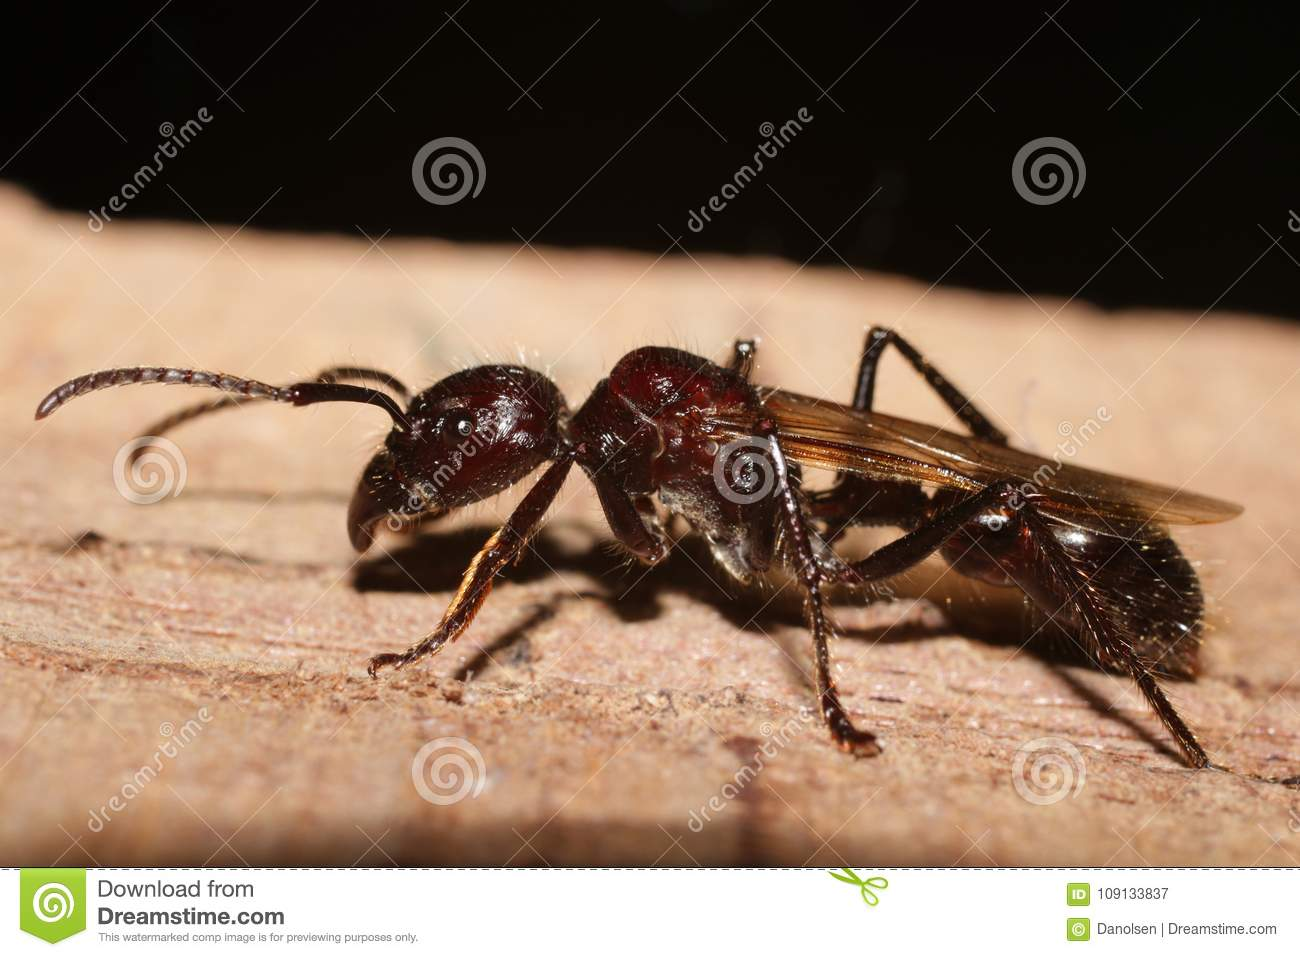 Bullet Ant, real killer insect with extremely potent sting